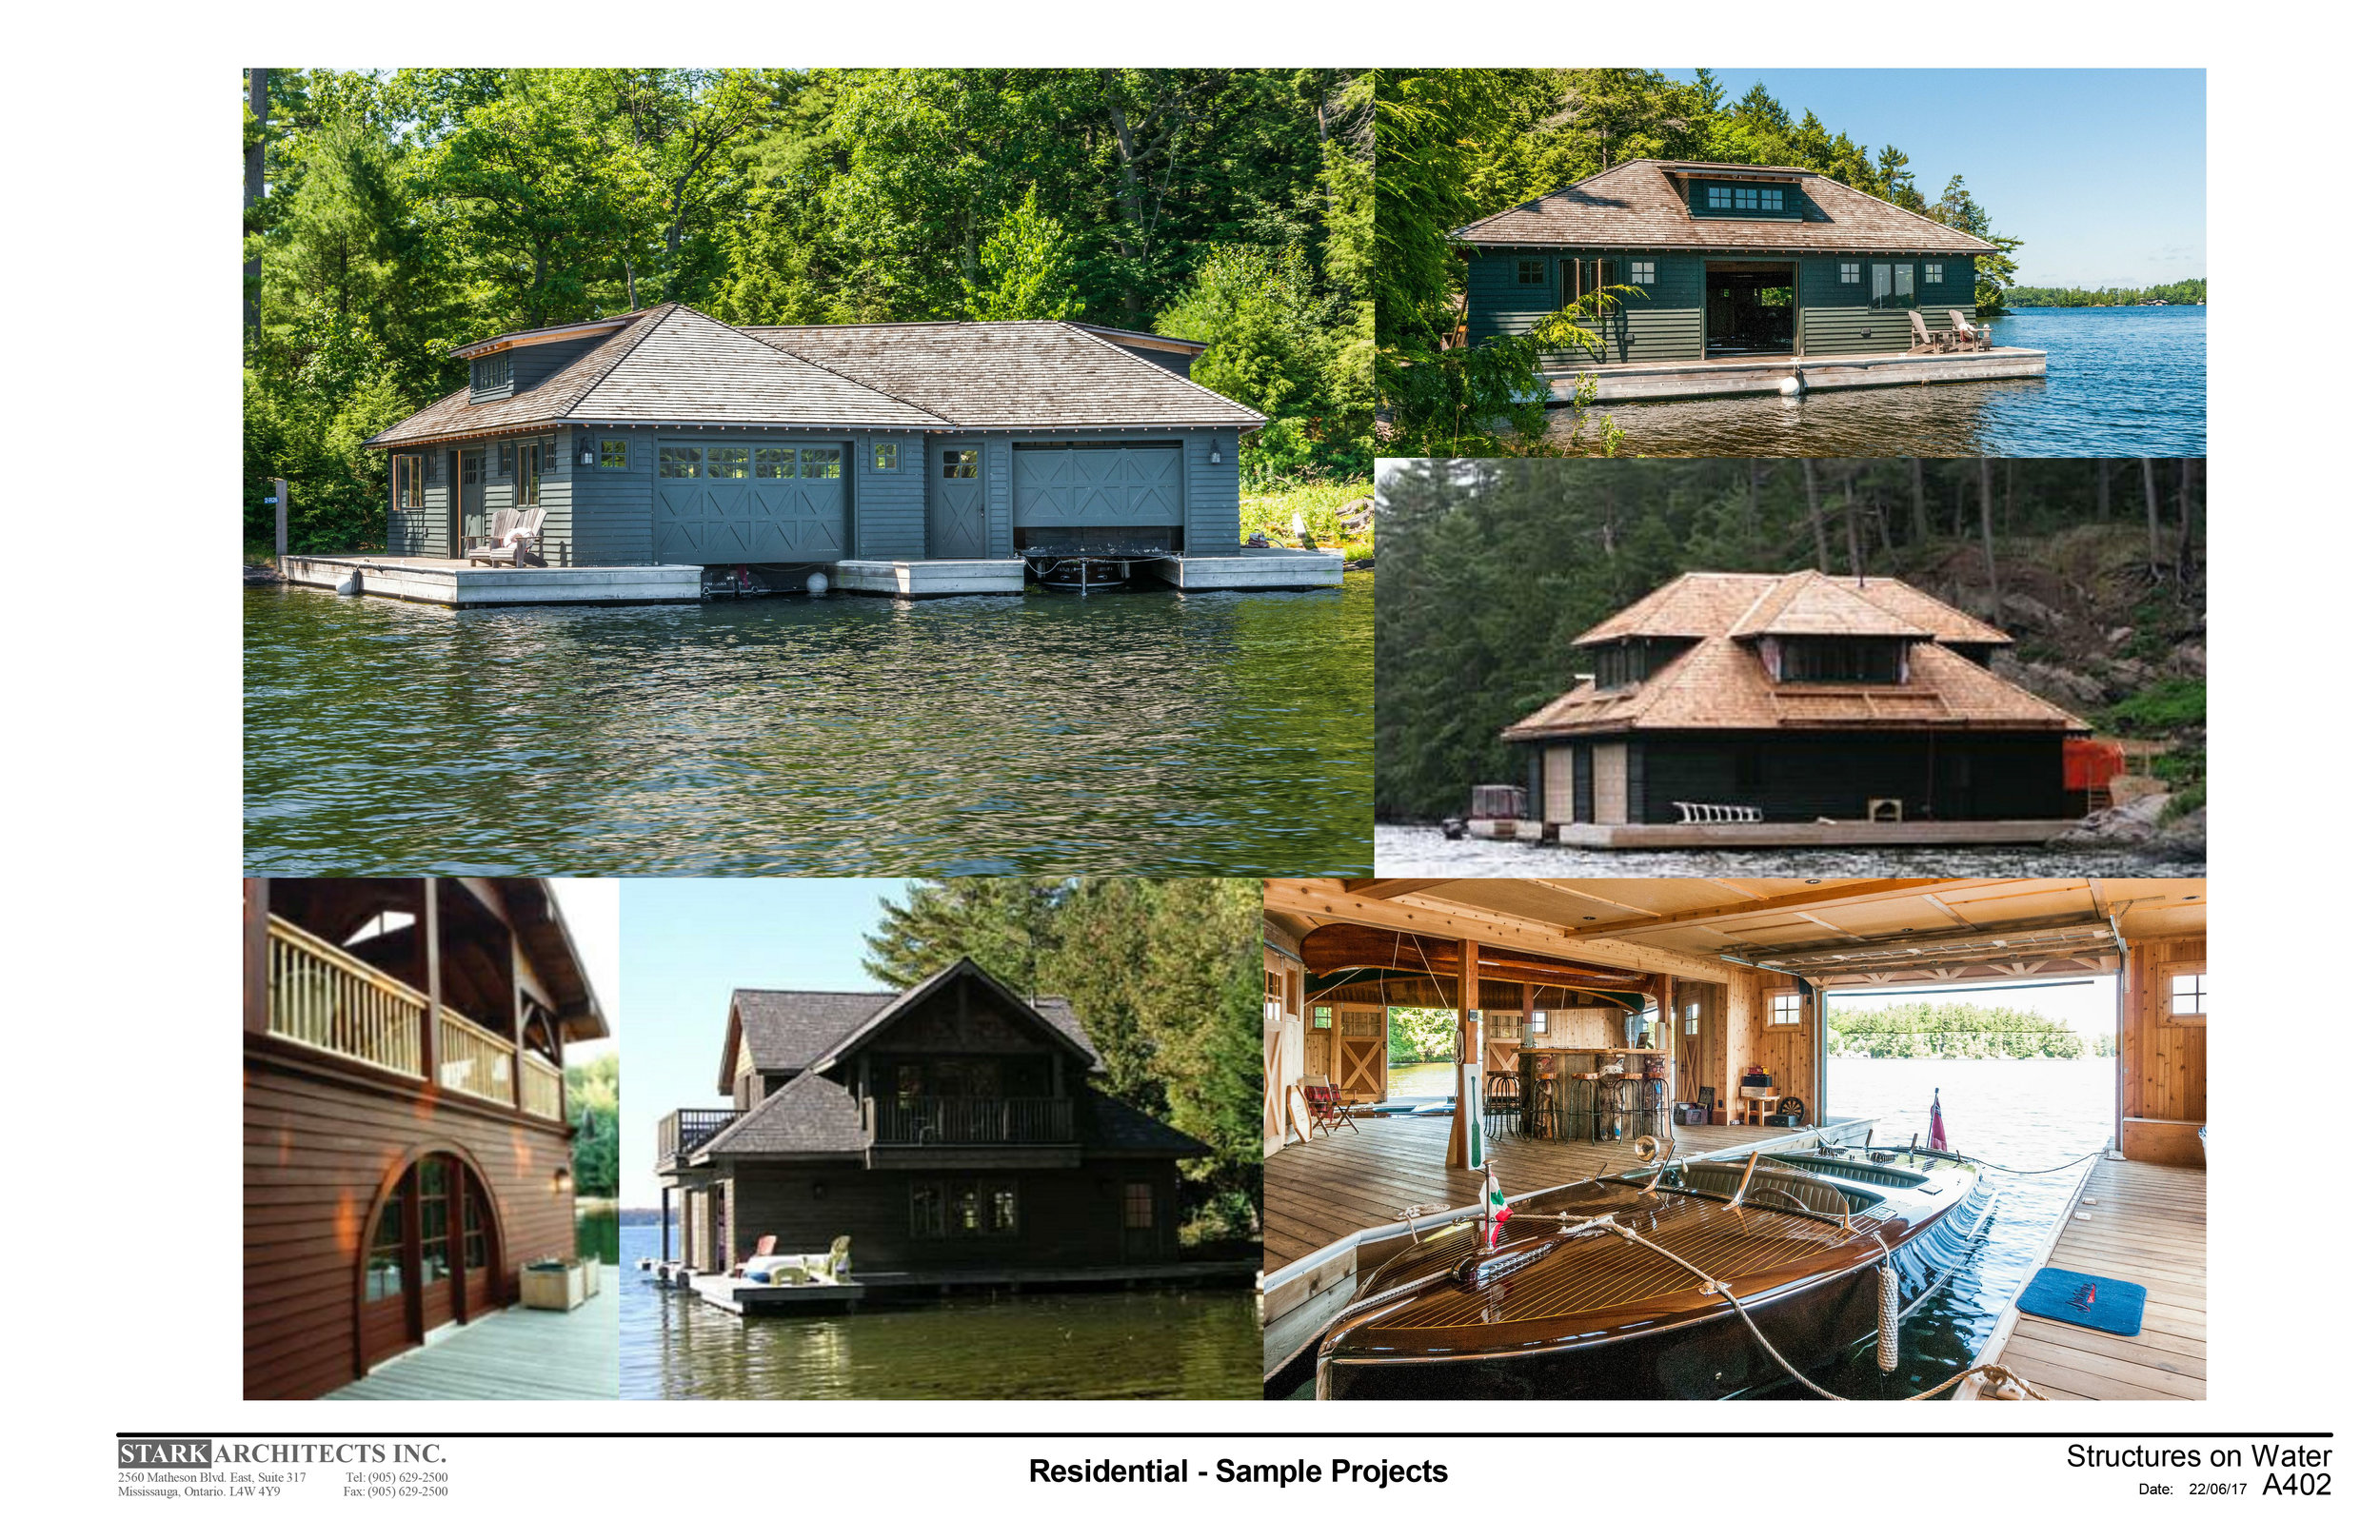 STARK ARCHITECTS INC - SAMPLE PROJECTS - RESIDENTIAL - 22-06-17 - A402.jpg